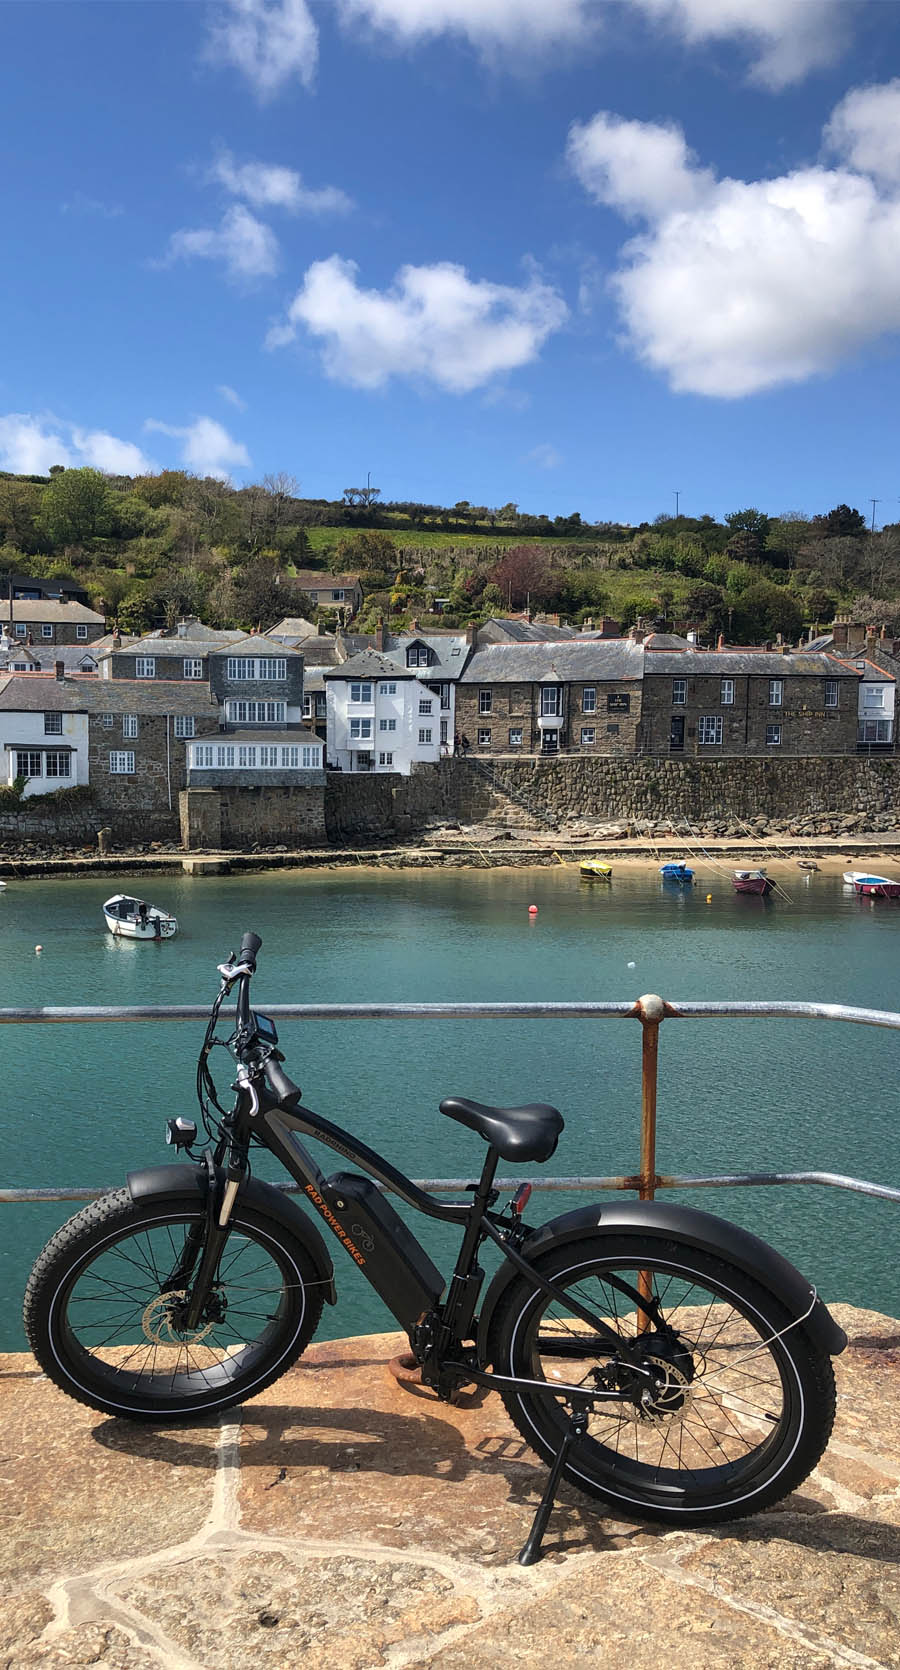 eBike Hire and cycle route along the coast to coast cycle trail in Cornwall